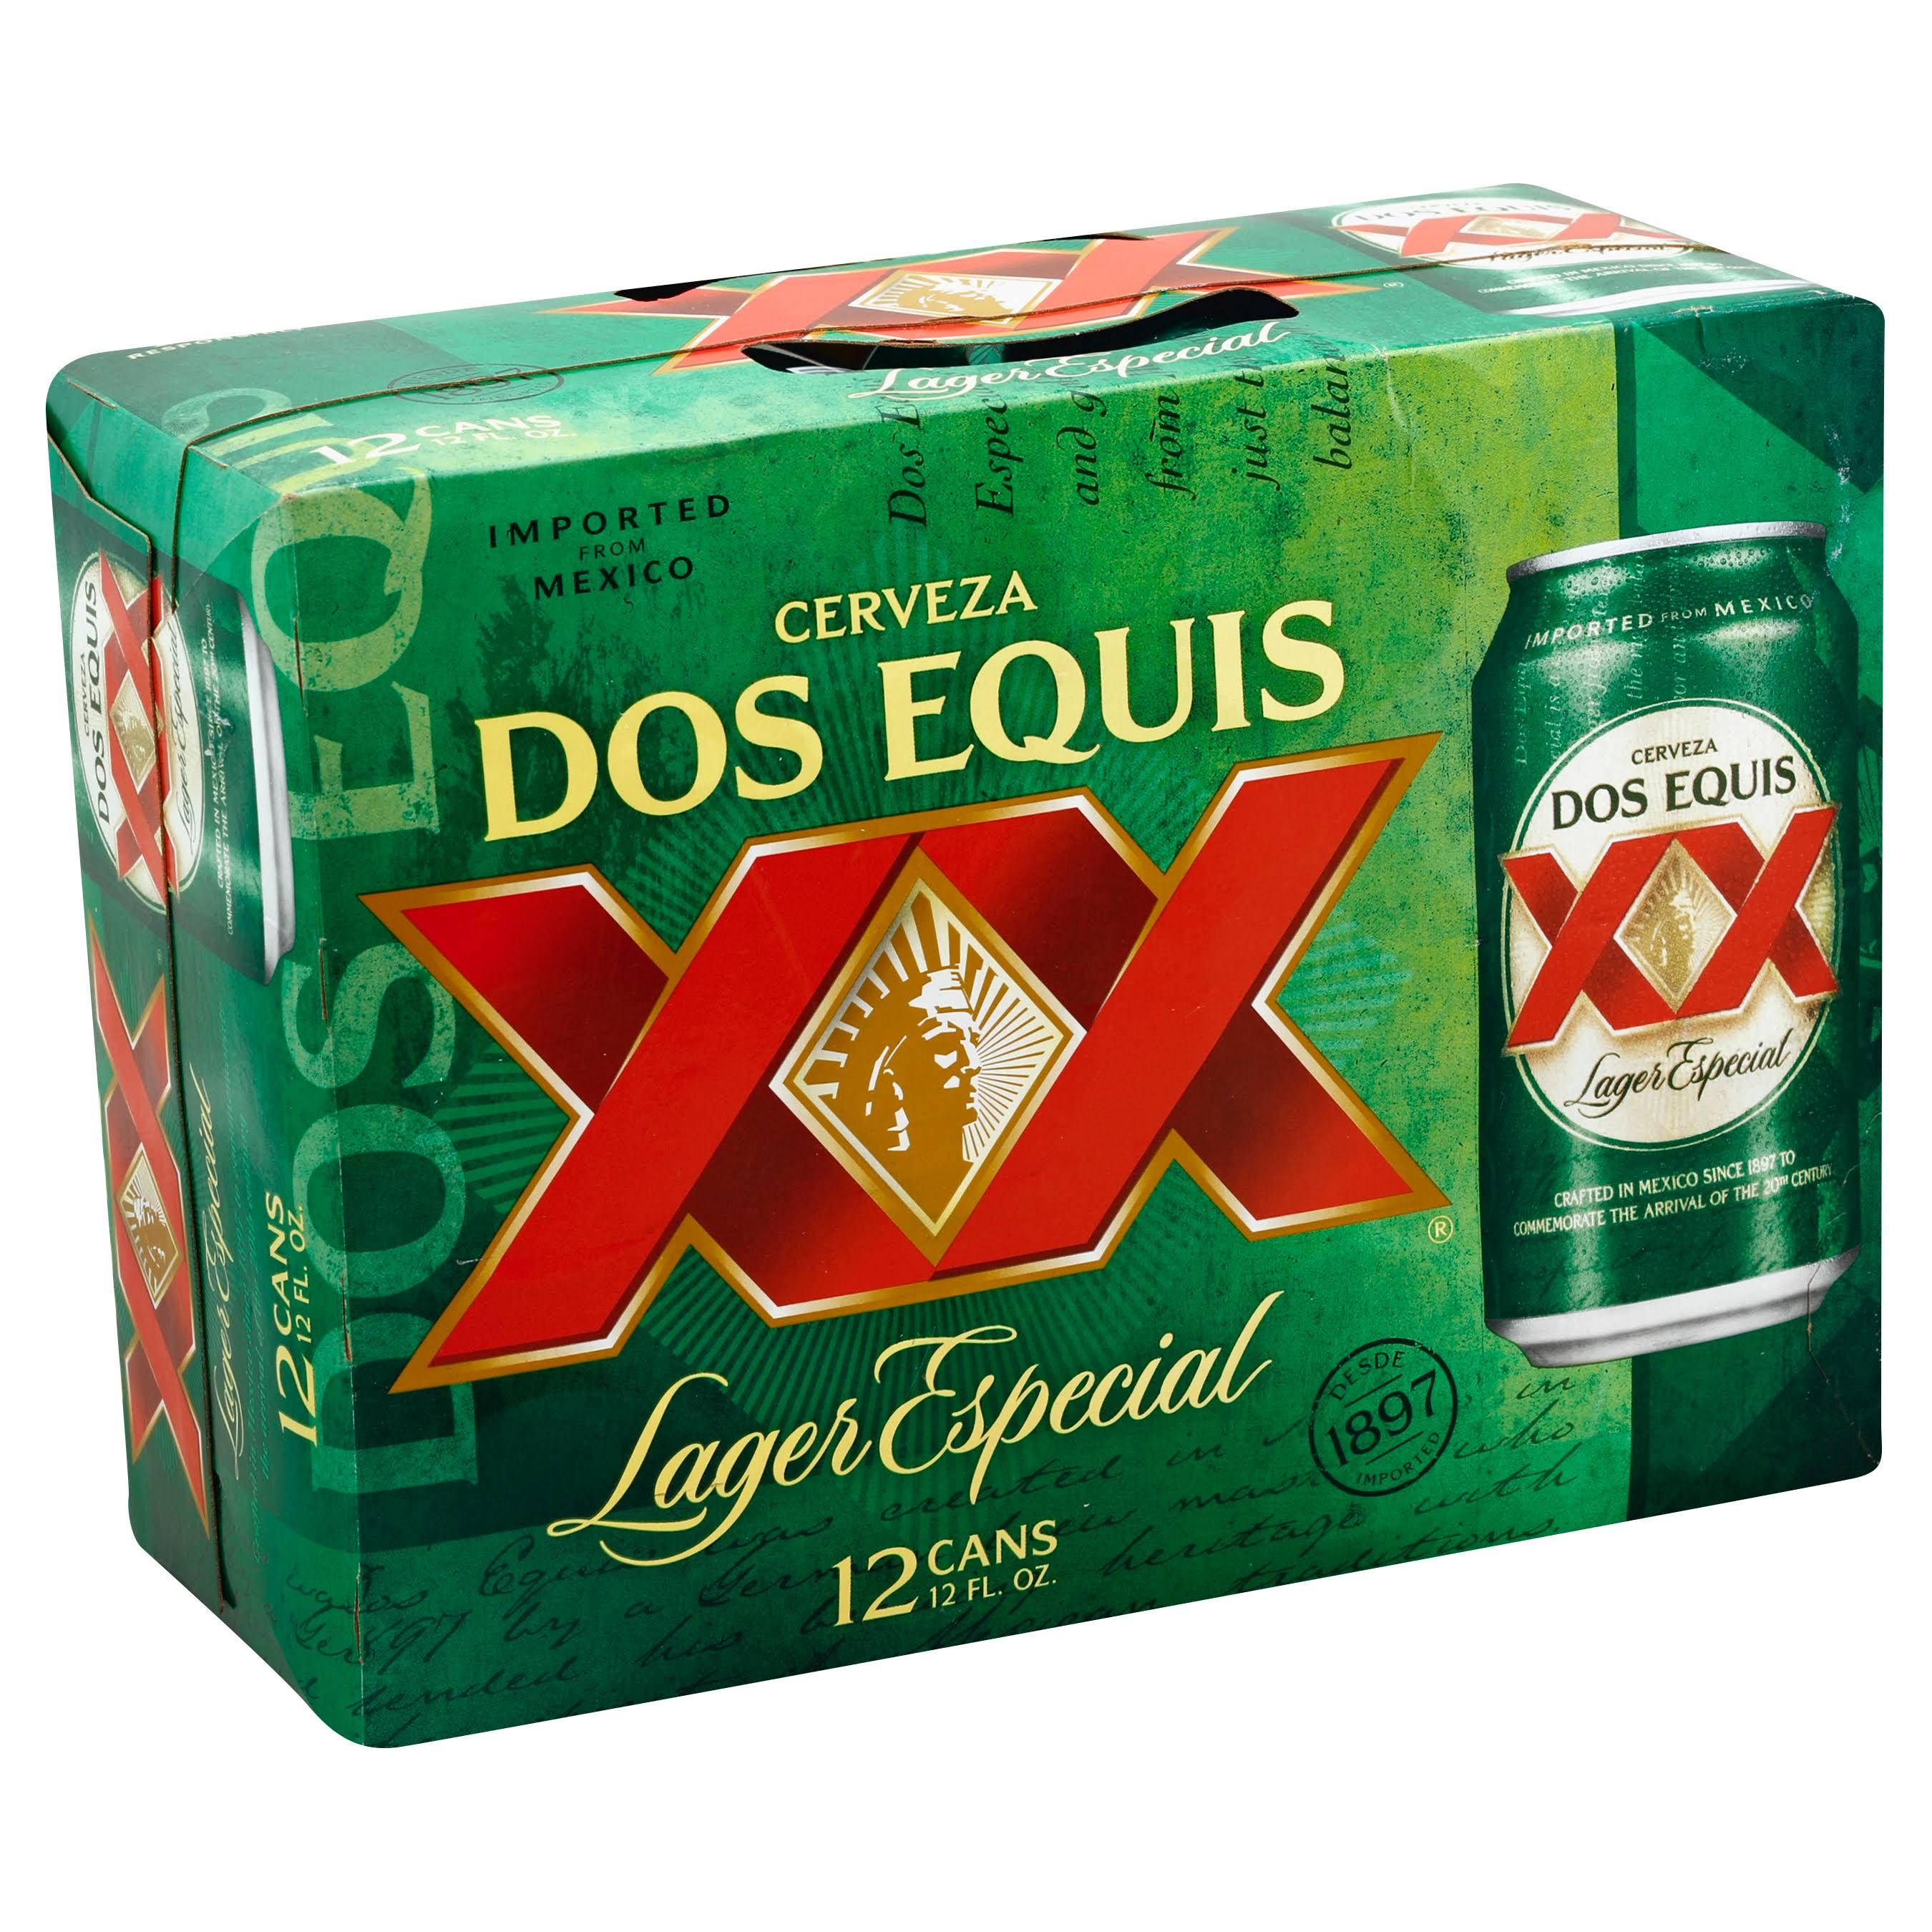 Dos Equis Lager Especial Beer - 12 Cans